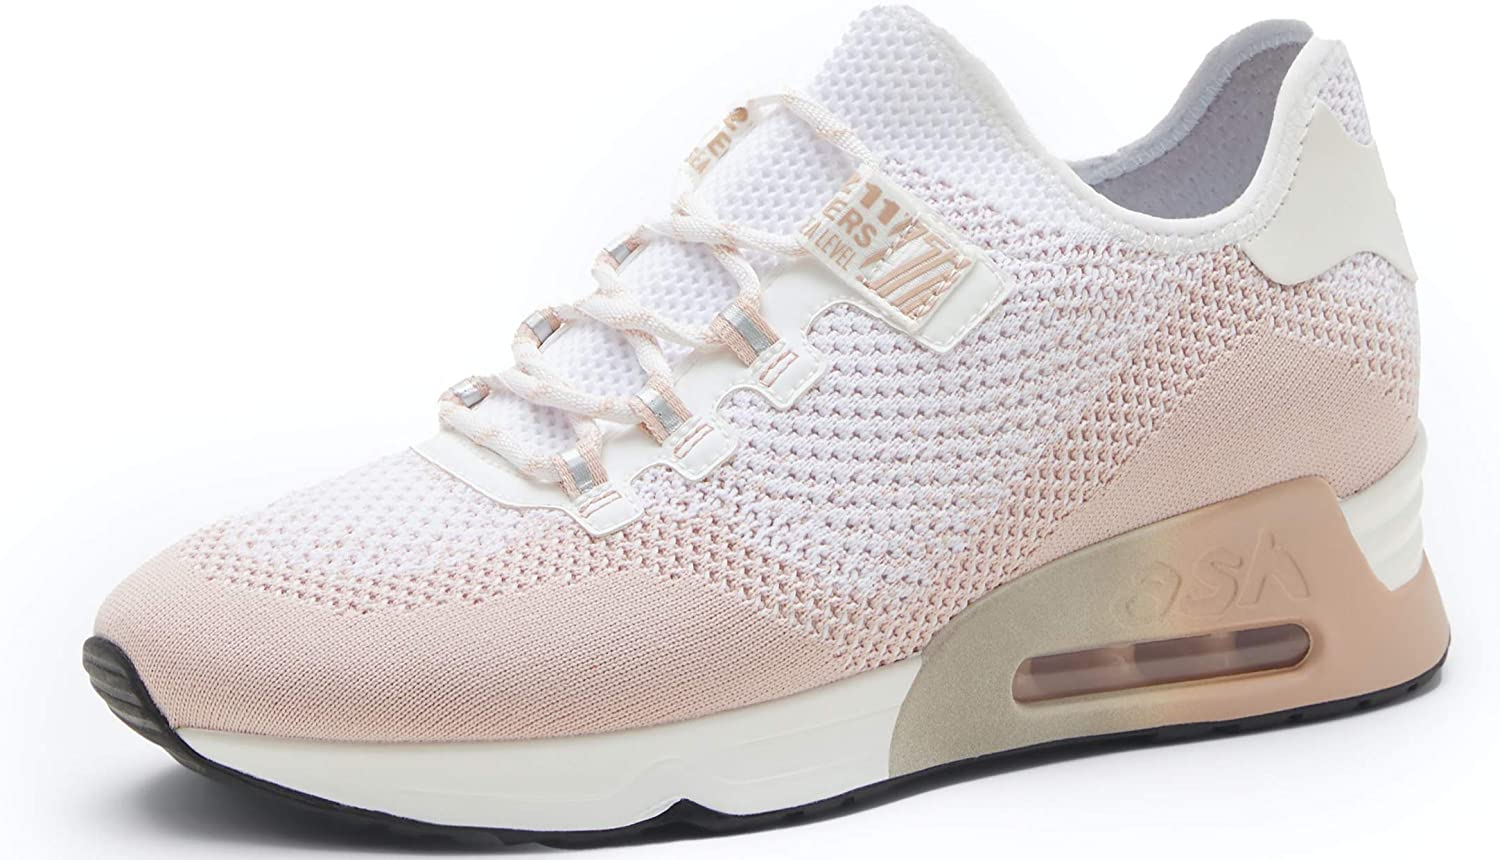 ASH Women's Krush Degrade Challenge the lowest price of Japan Sneaker Comfortable OFFicial shop Sho Casual Walking